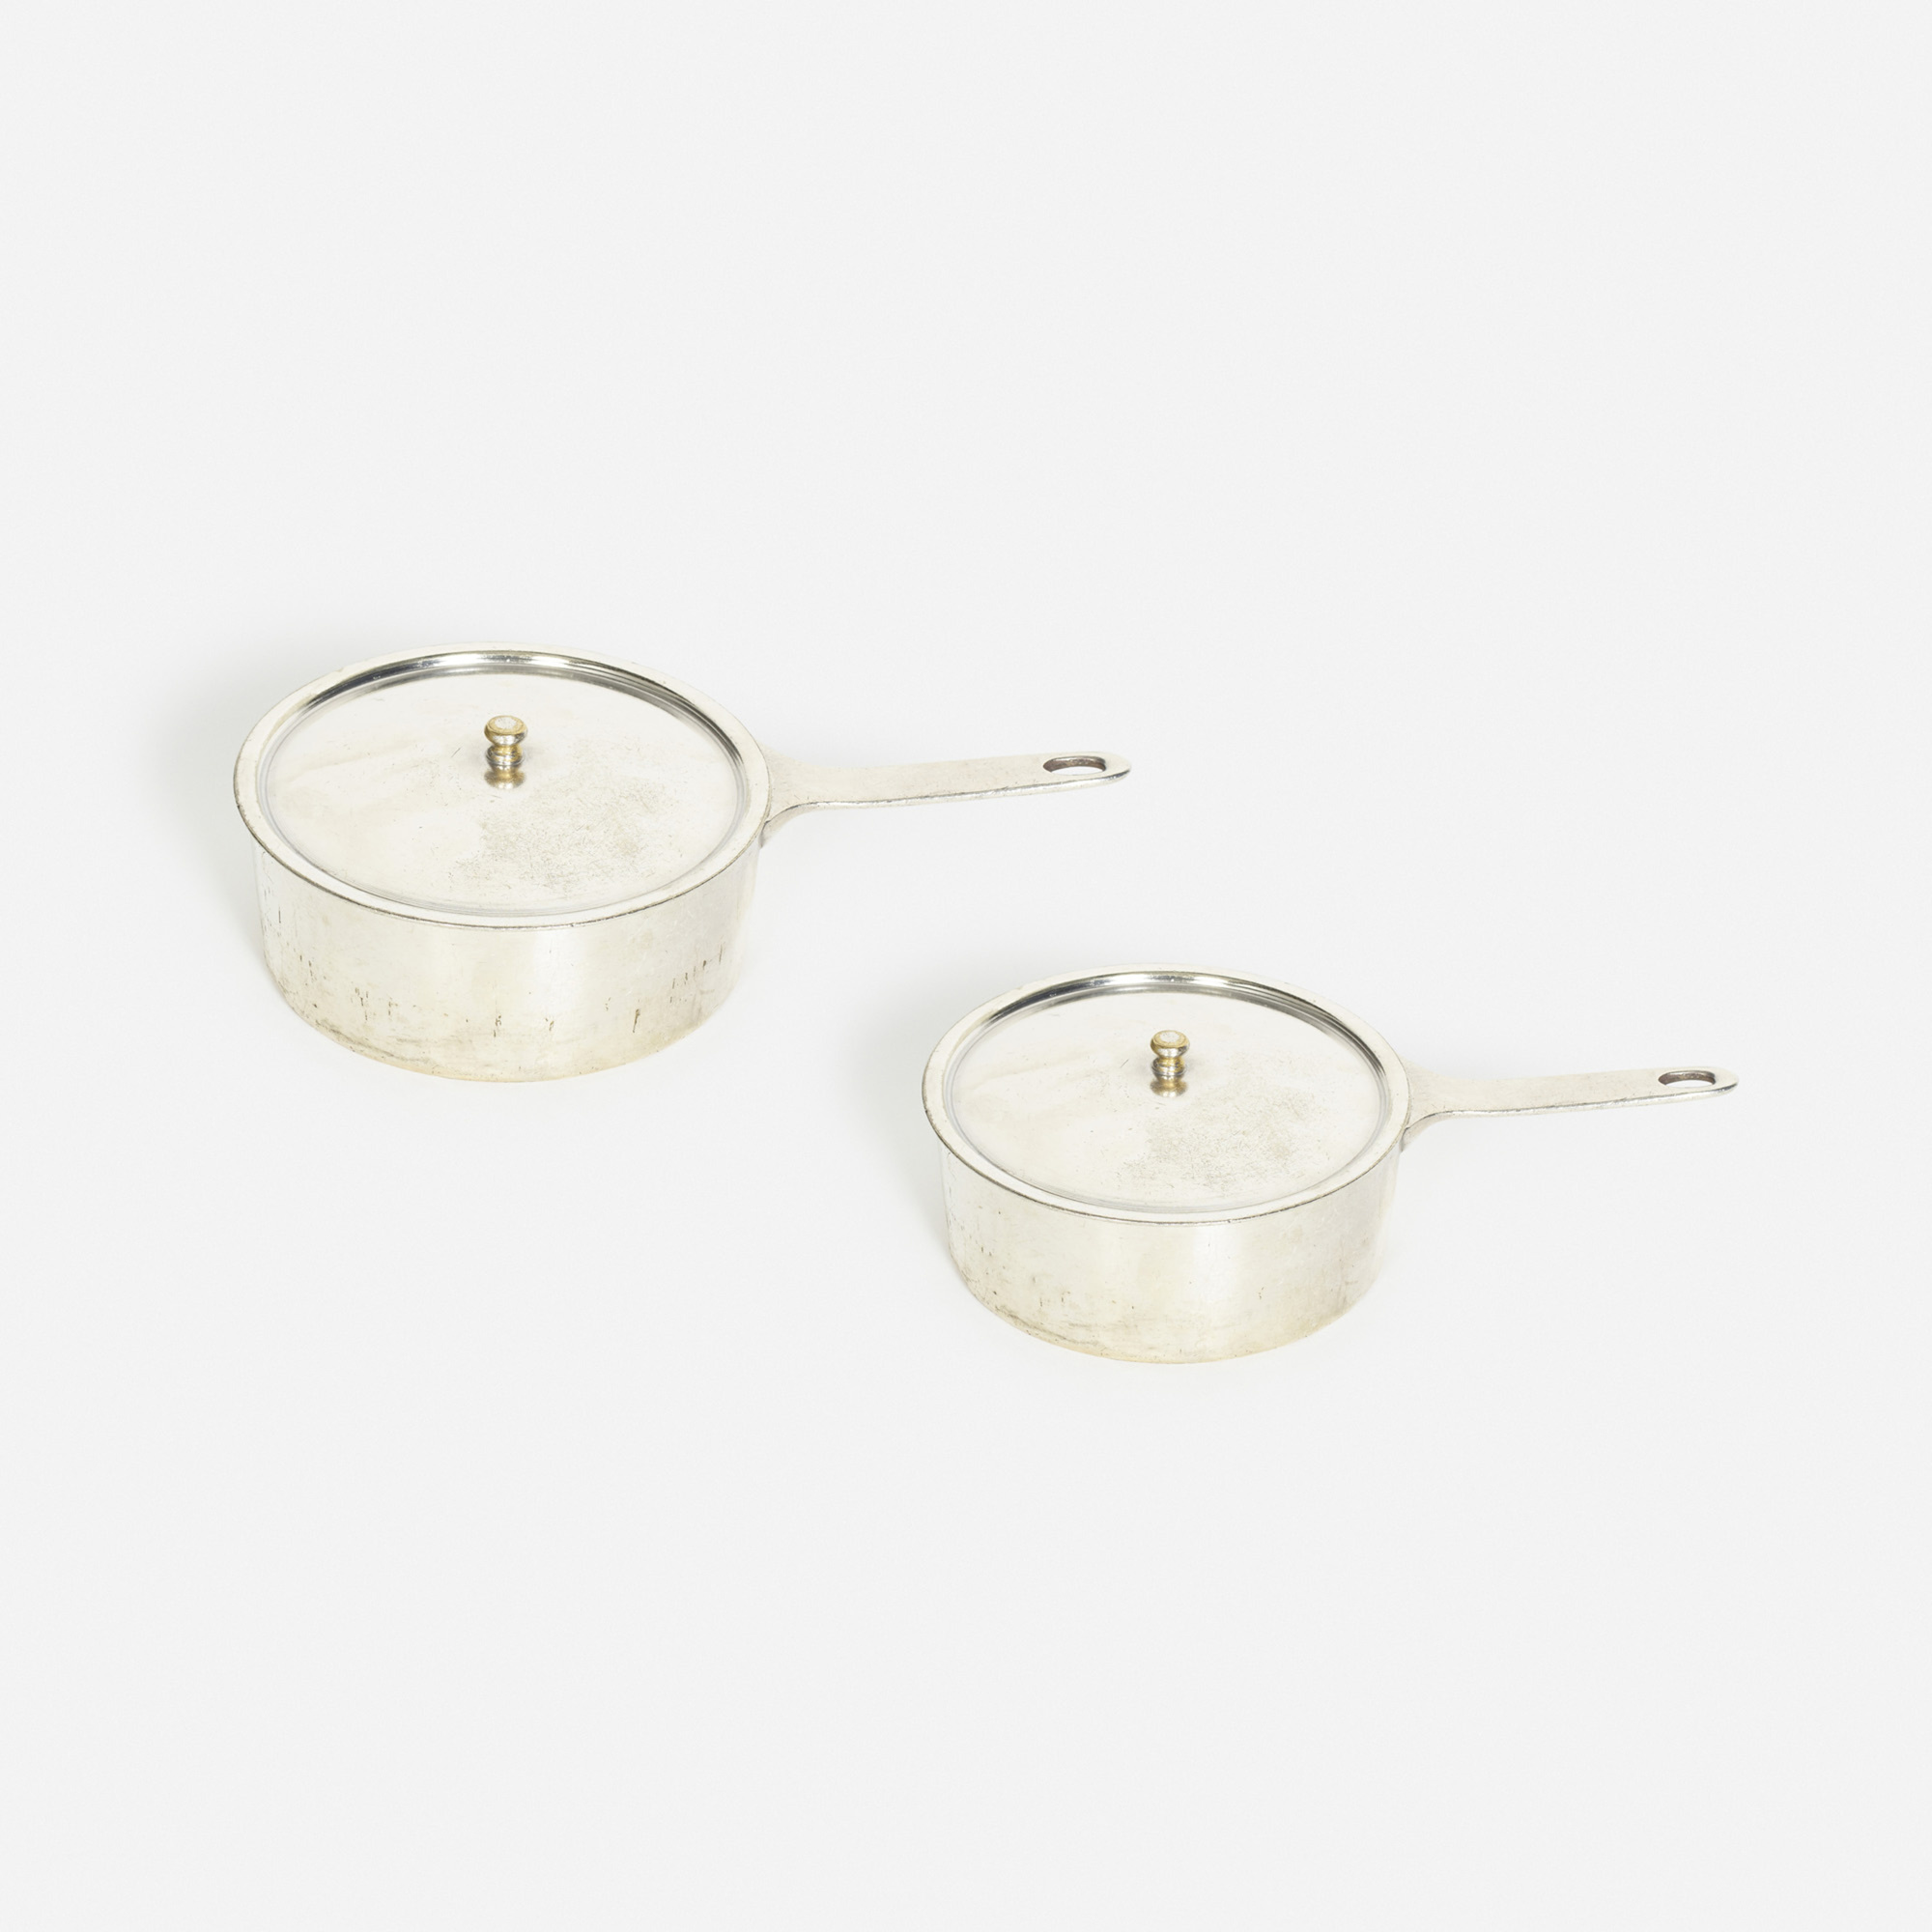 861: Garth and Ada Louise Huxtable / sauce pots from the kitchen of The Four Seasons, set of two (1 of 1)